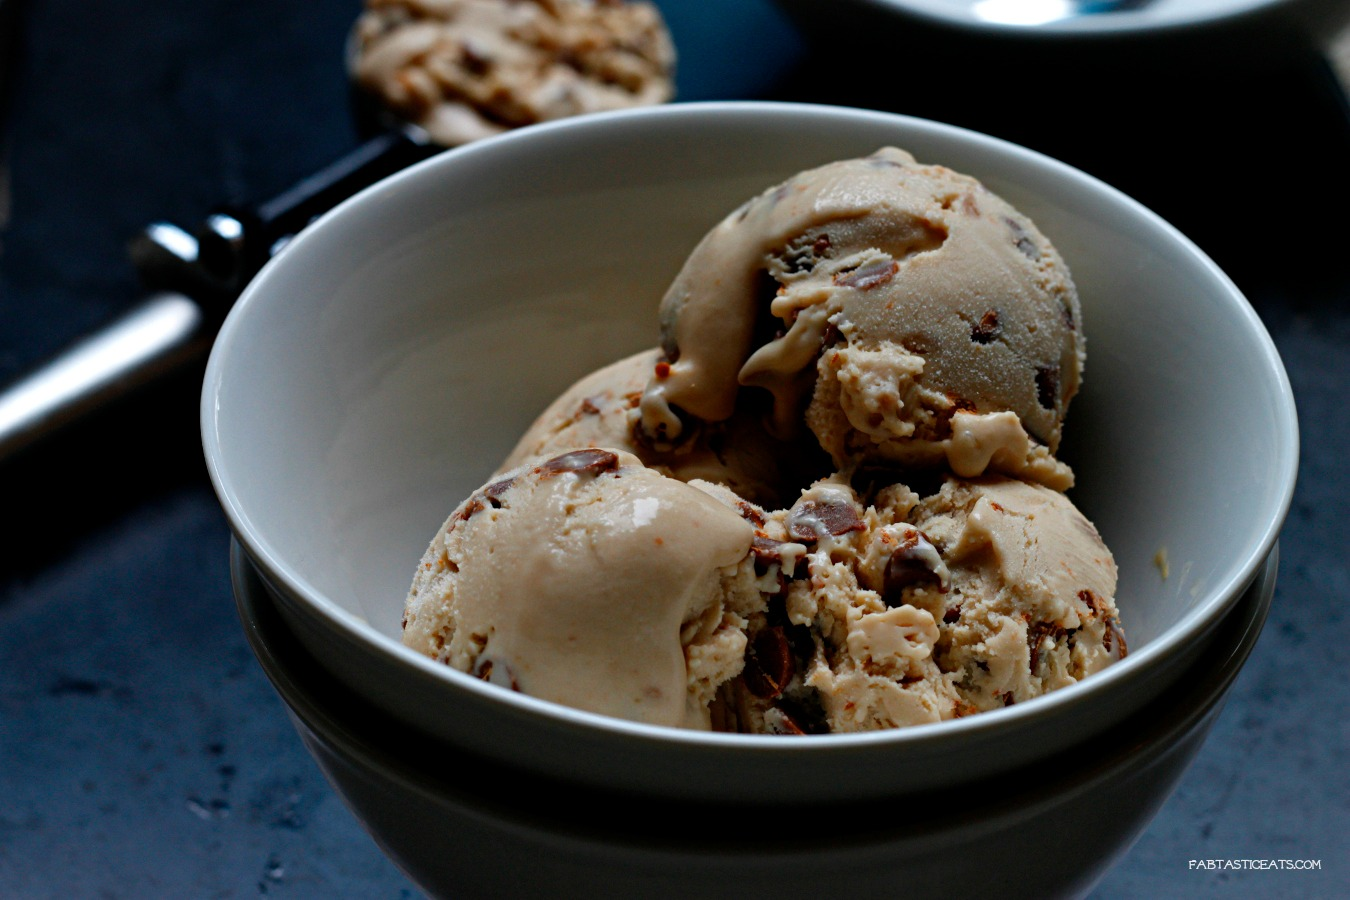 _Biscoff Cinnamon Chip Ice Cream